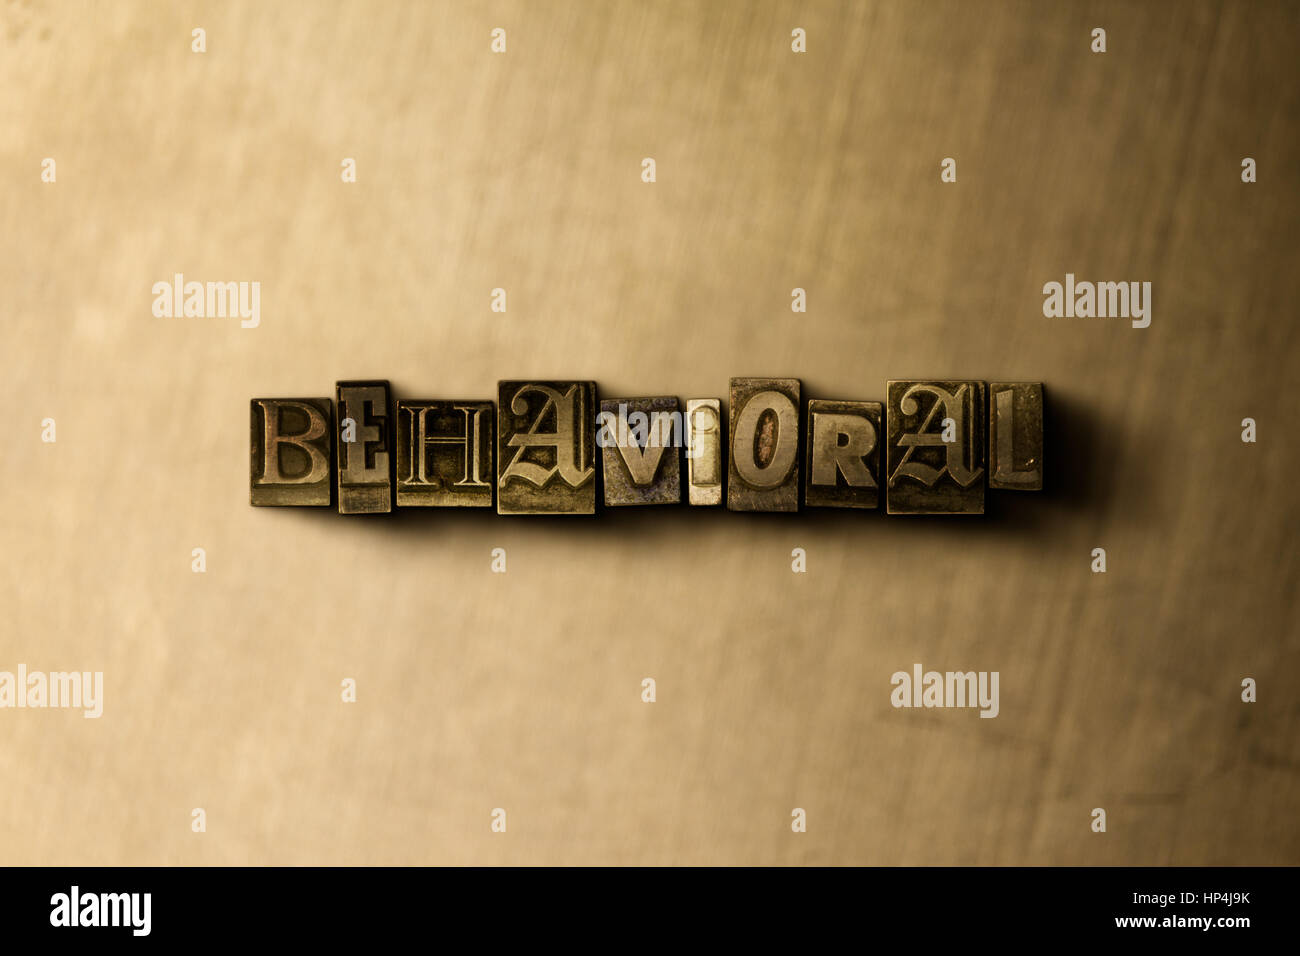 BEHAVIORAL - close-up of grungy vintage typeset word on metal backdrop. Royalty free stock illustration.  Can be - Stock Image